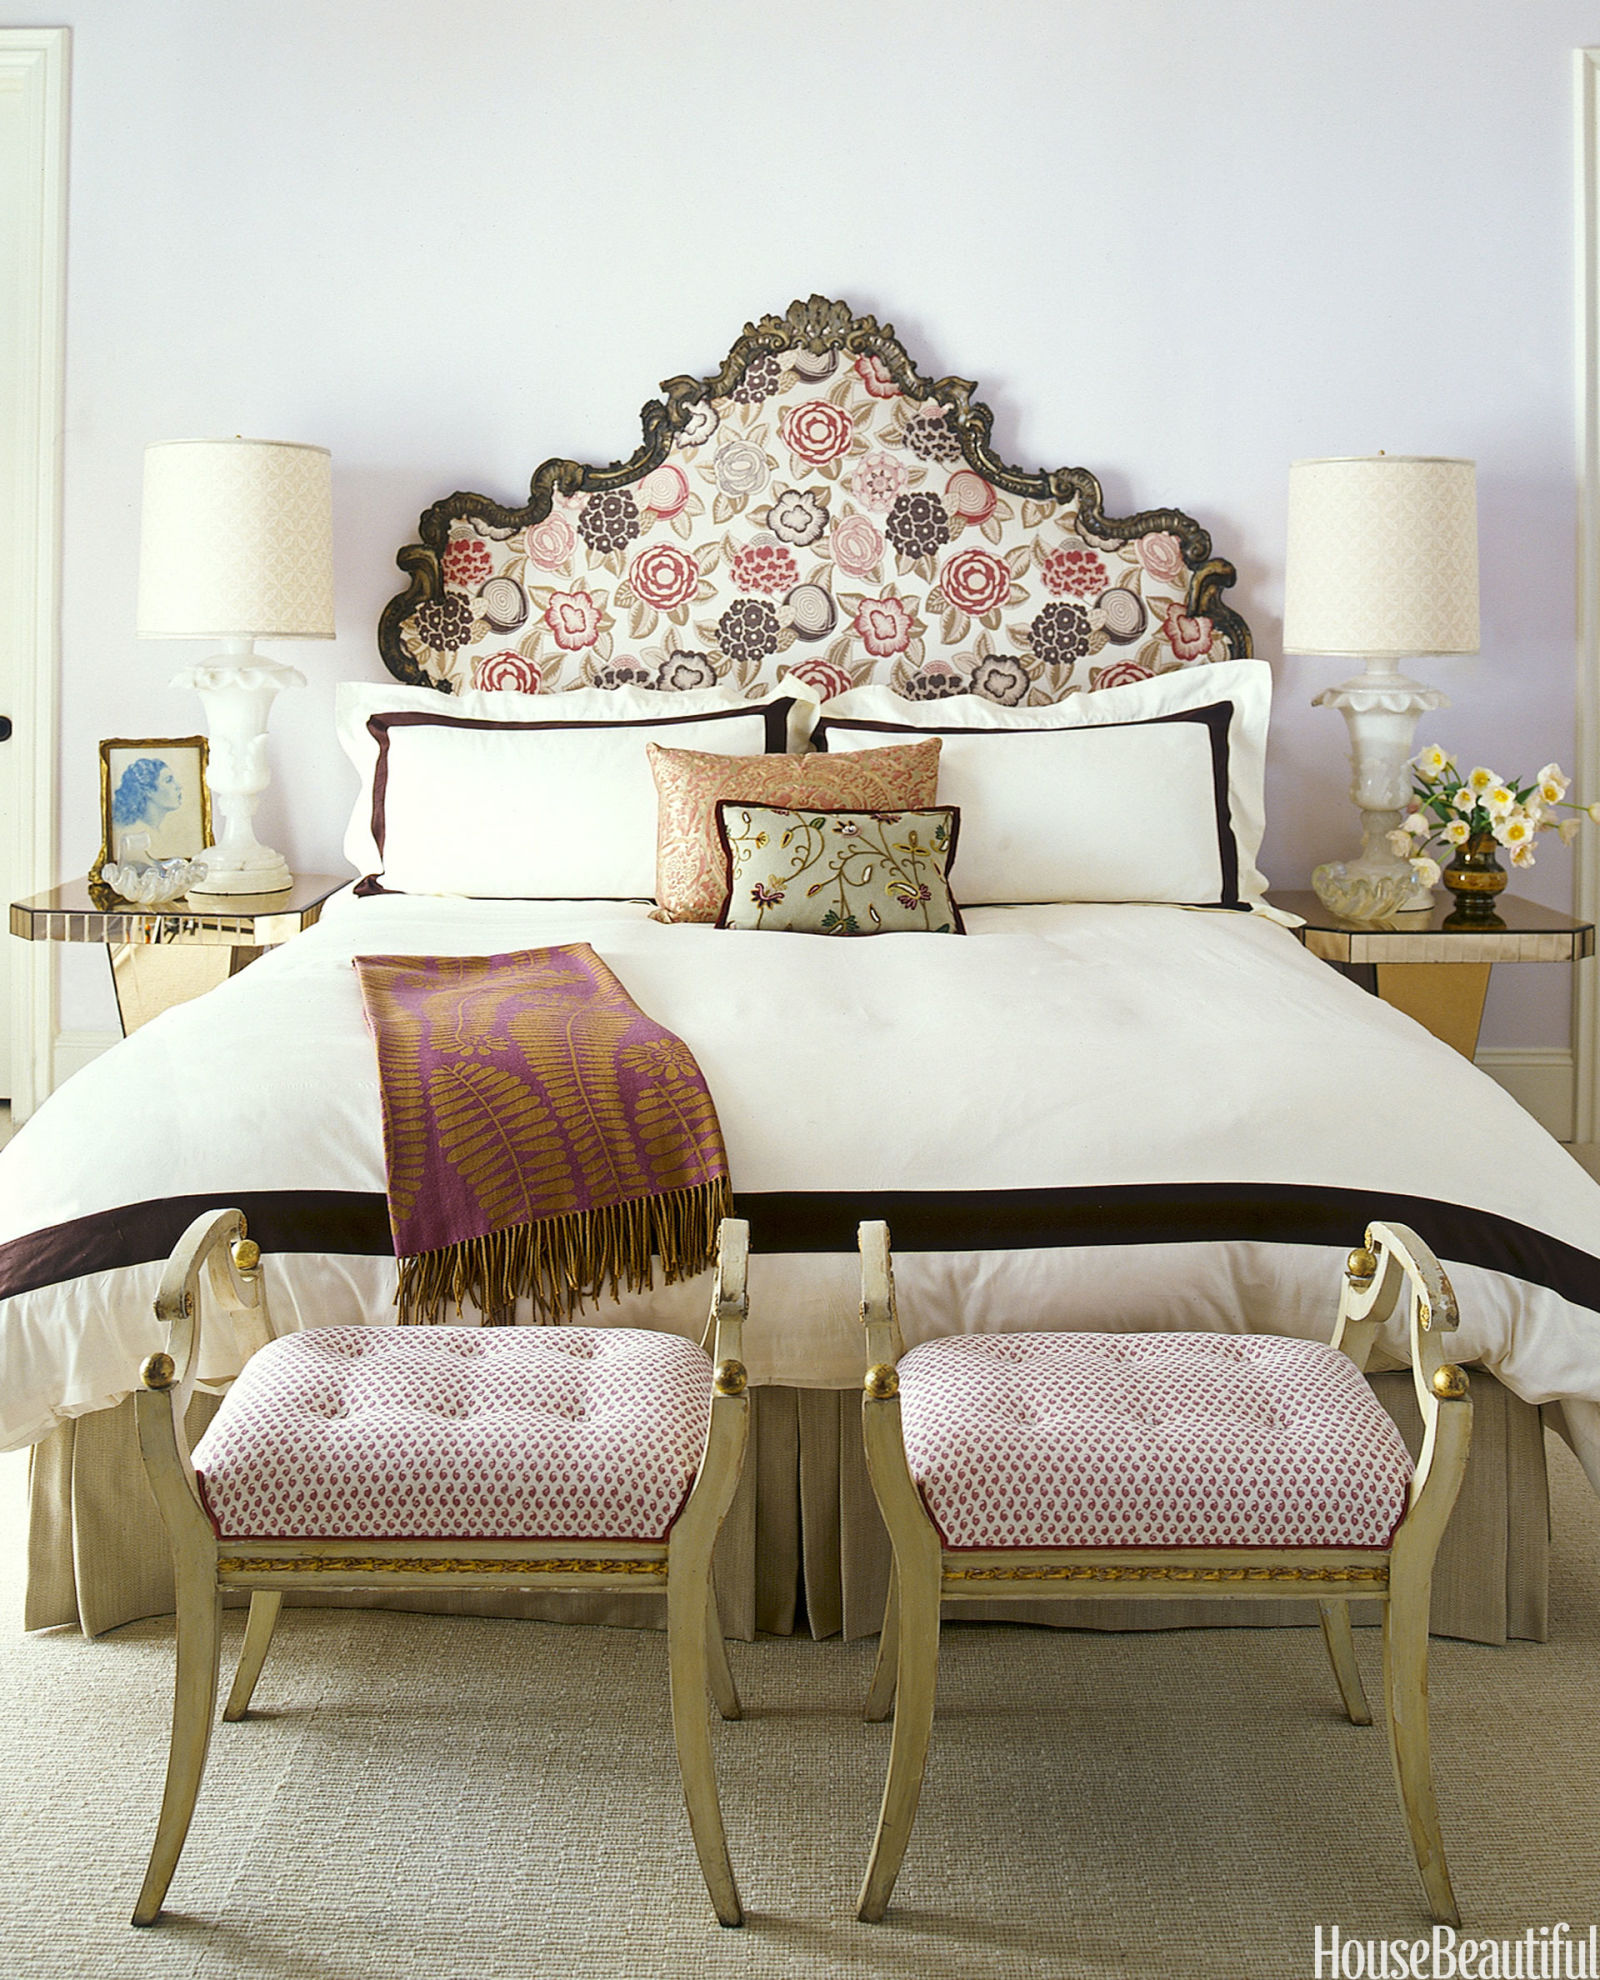 Italian bedroom decor - Italian Bedroom Decor 21